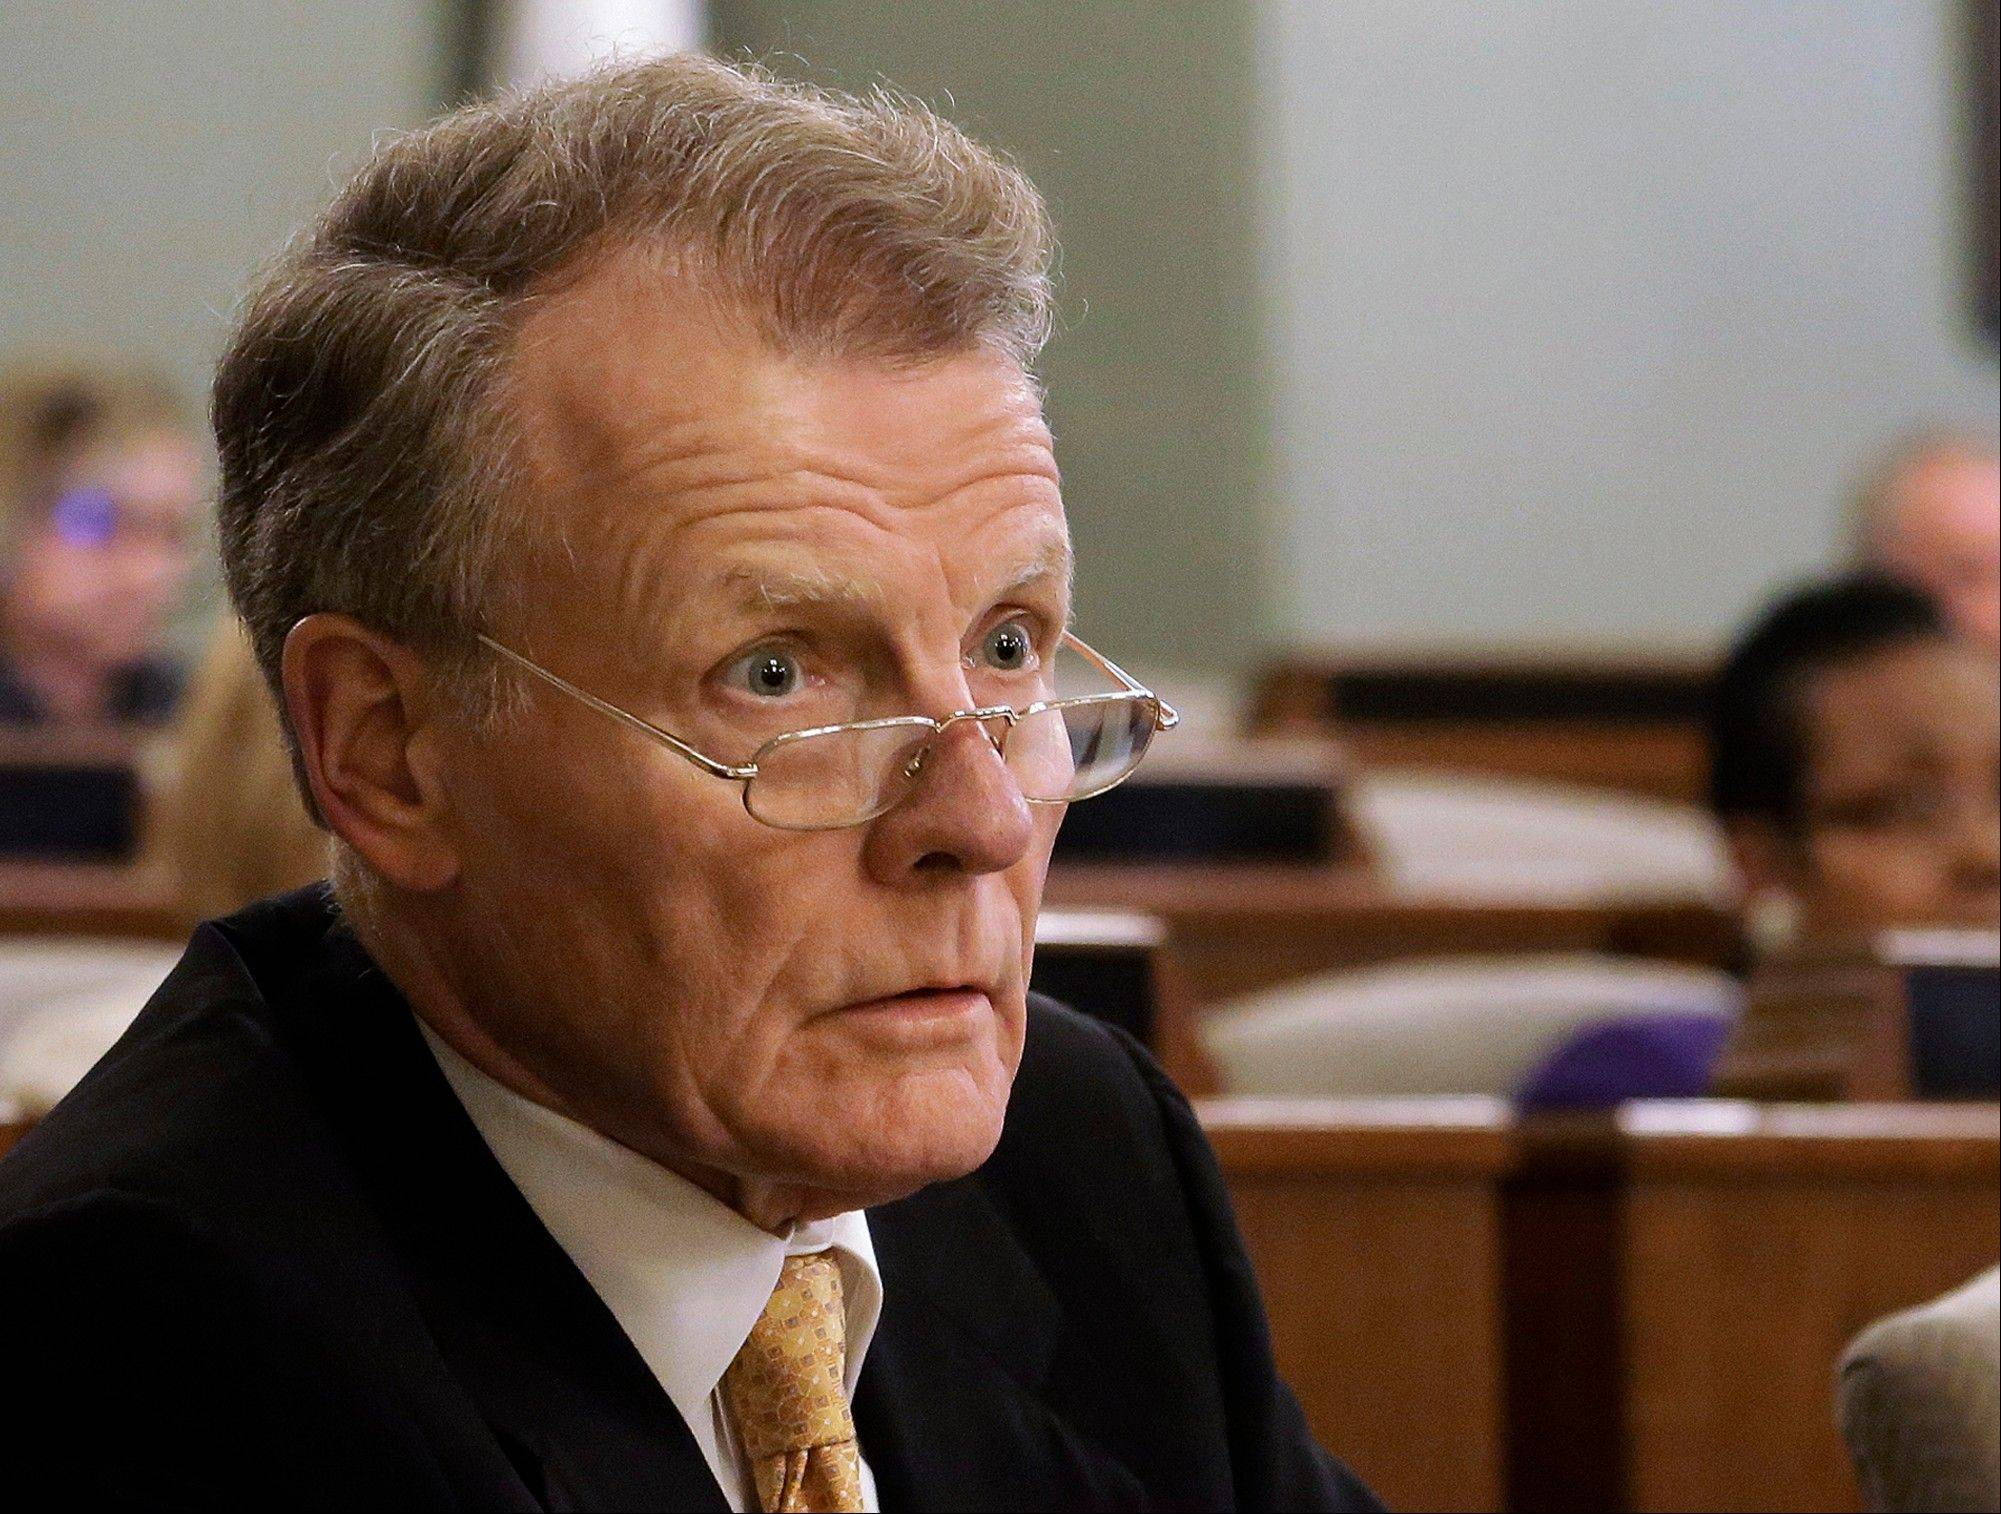 In this June 18, 2013 file photo, Illinois House Speaker Michael Madigan, a Chicago Democrat, speaks to lawmakers during a House committee hearing at the state Capitol in Springfield. Lawmakers say they are making progress on a deal to solve Illinoisí $97 billion pension crisis, but are not confident there will be a vote as the annual fall legislative session enters its final days beginning Tuesday.